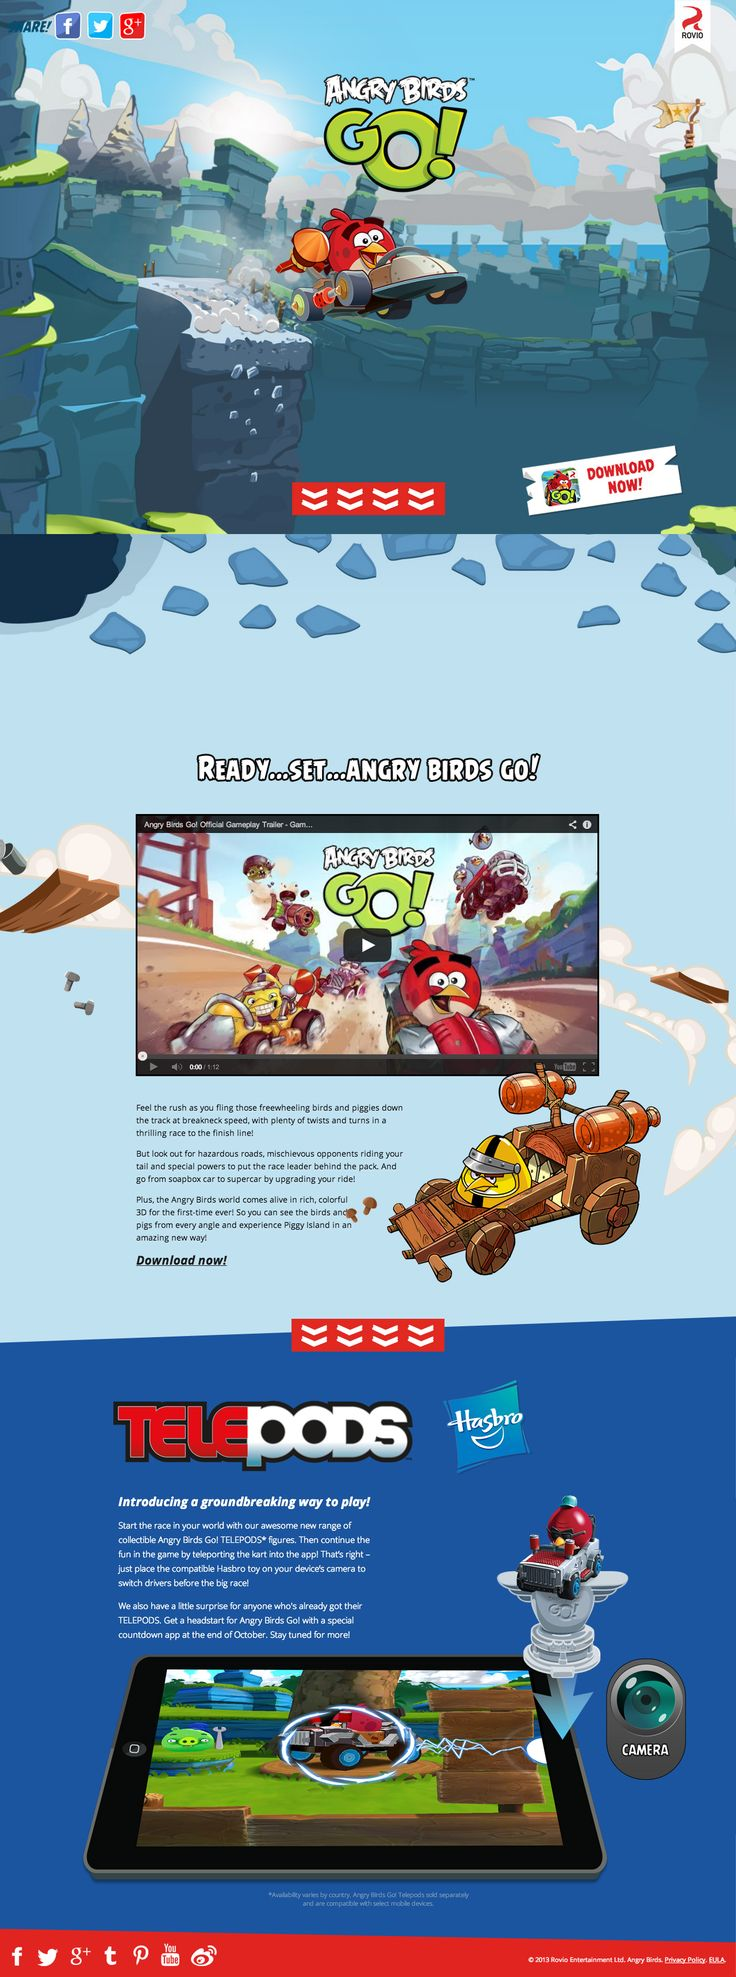 Colorful landing page with a fancy parallax hover effect to promote Angry Birds GO!